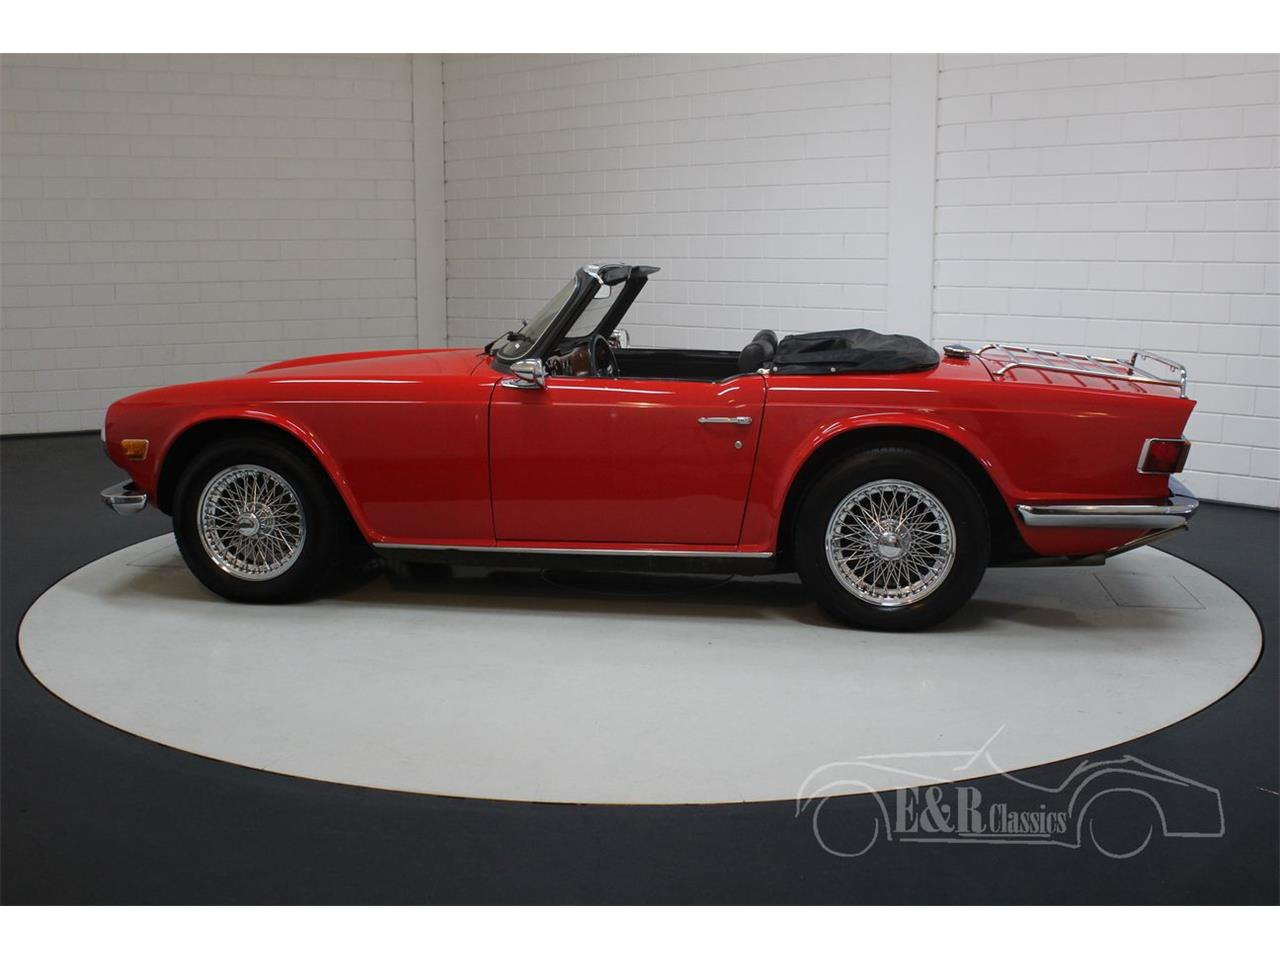 Large Picture of Classic '73 Triumph TR6 - $25,800.00 Offered by E & R Classics - PWMQ